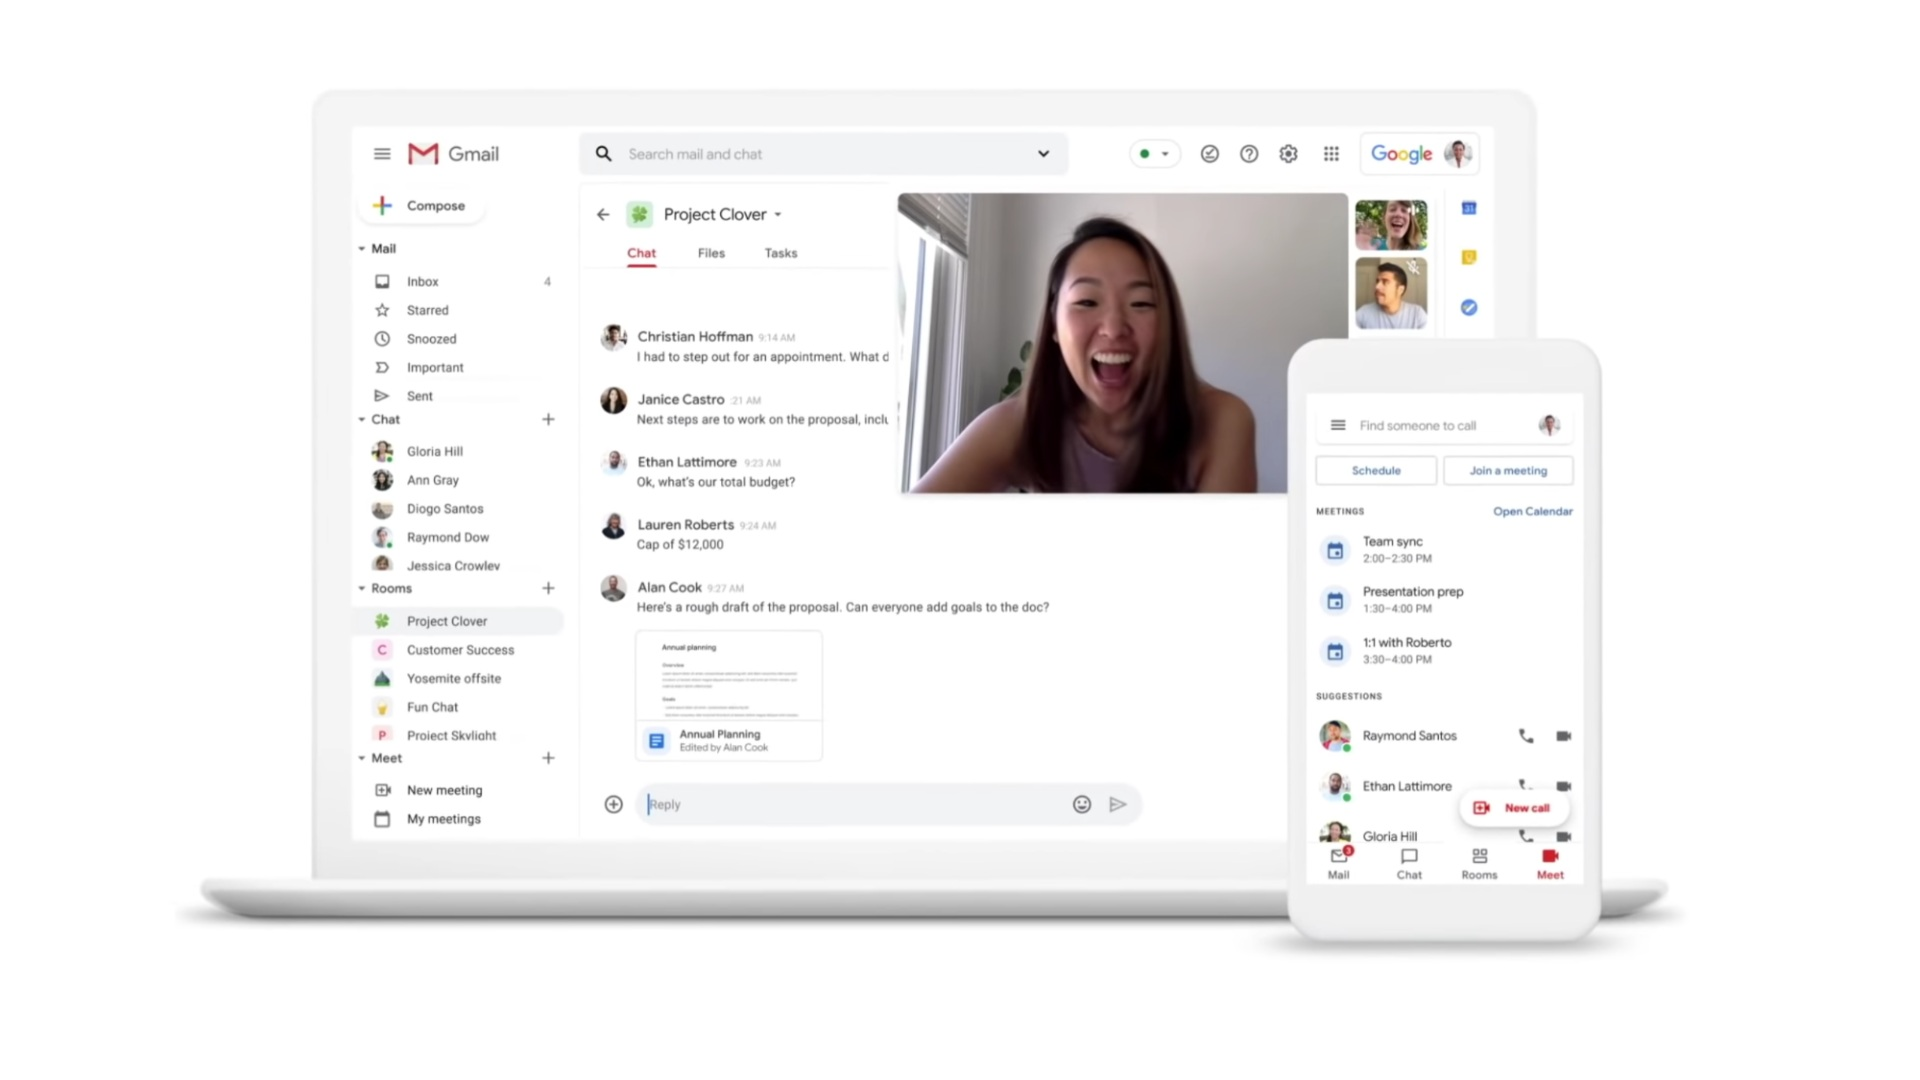 Google's brilliant new Slack competitor is based in Gmail, right on time, and looks amazing